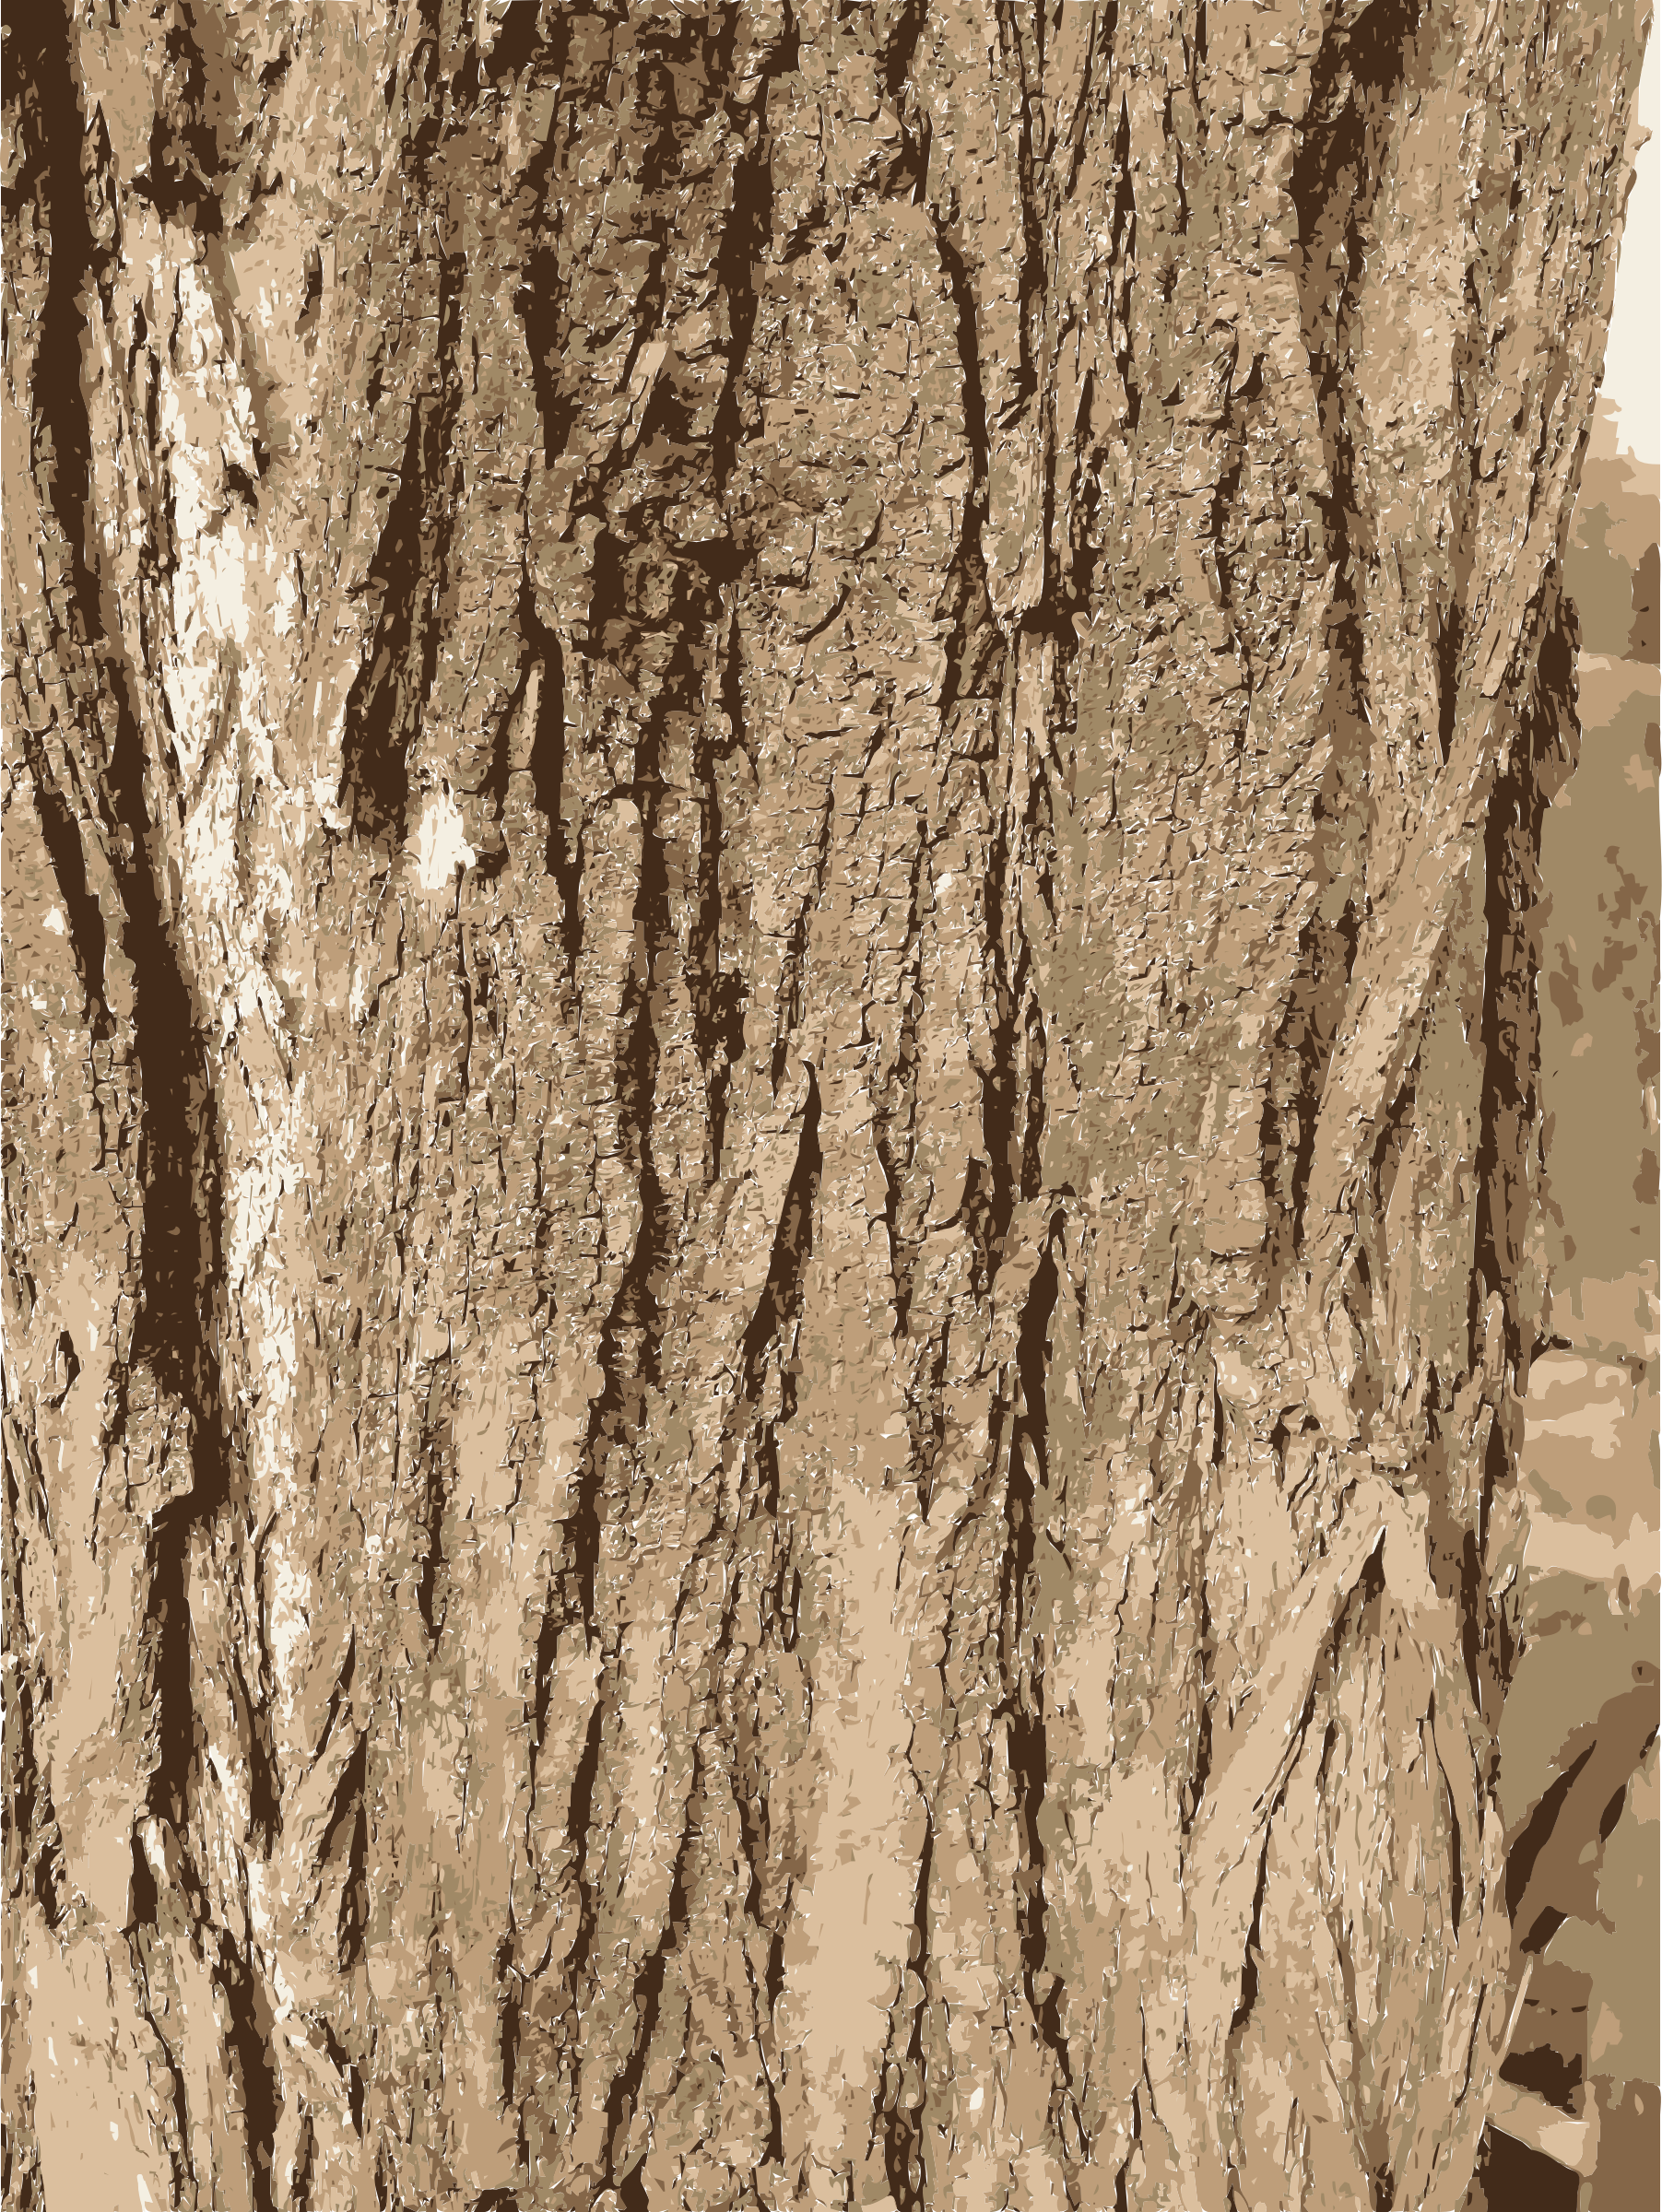 Tree bark background clipart banner transparent download Clipart - Tree bark texture banner transparent download